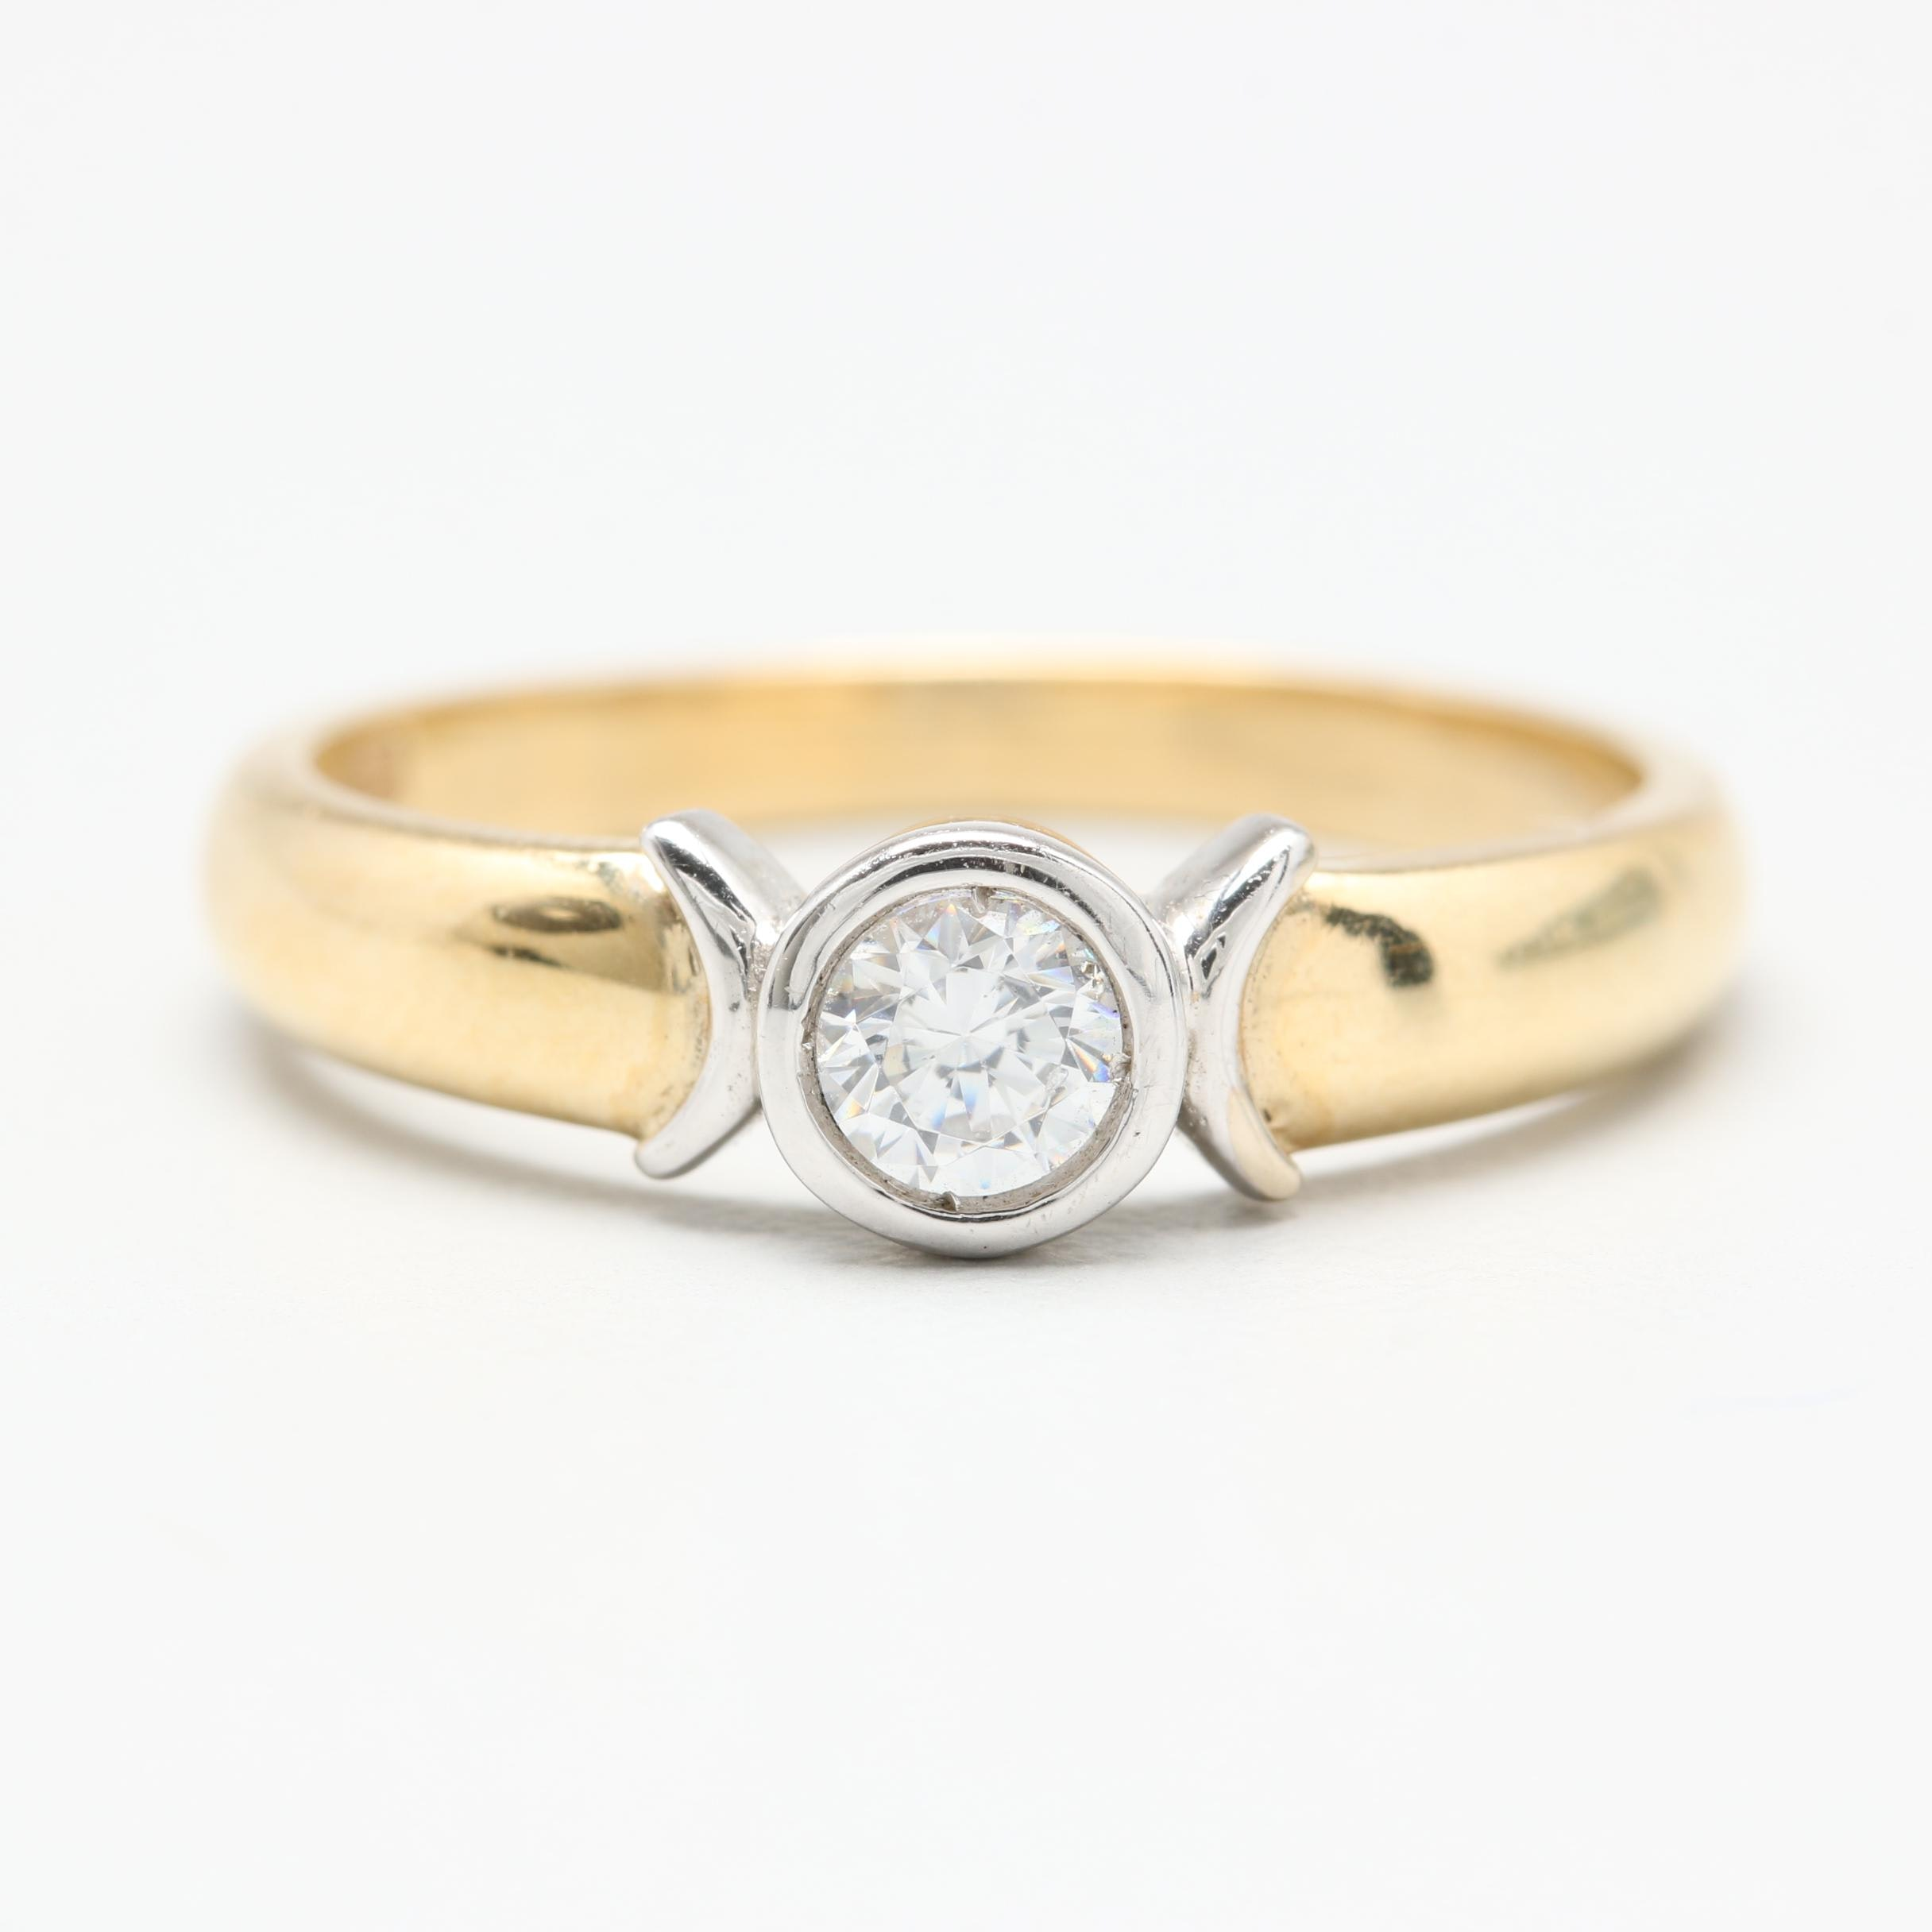 14K Yellow and White Gold Cubic Zirconia Ring